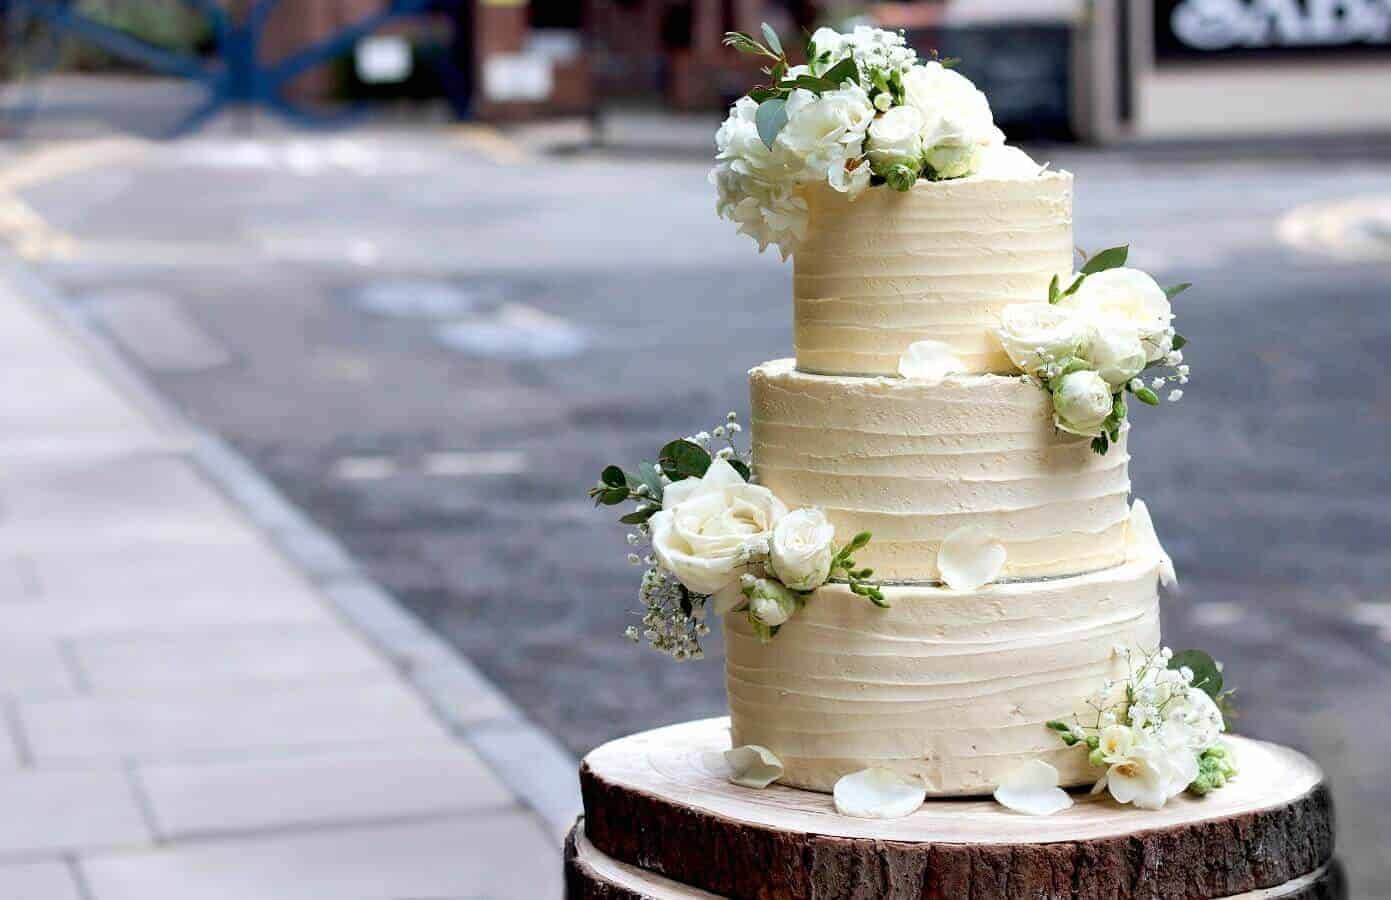 6 Celebrity Wedding Cakes Which Makes You Love The Cakes More